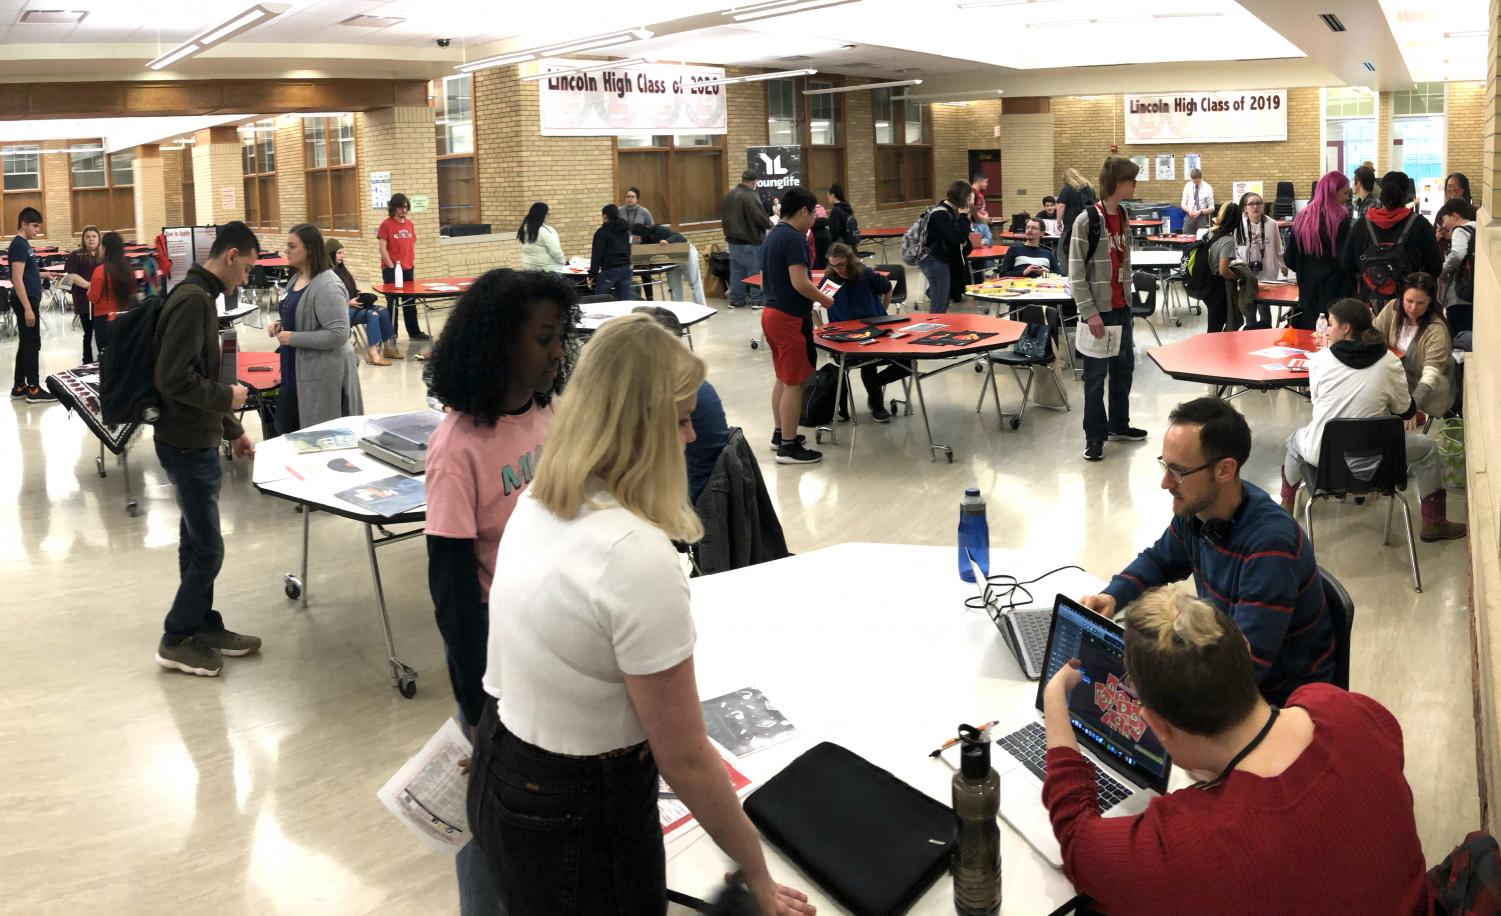 Students and parents gather in the cafeteria on Wednesday, Jan. 8, 2020 to learn about the variety of after school opportunities offered by the Lincoln High School Community Learning Center.